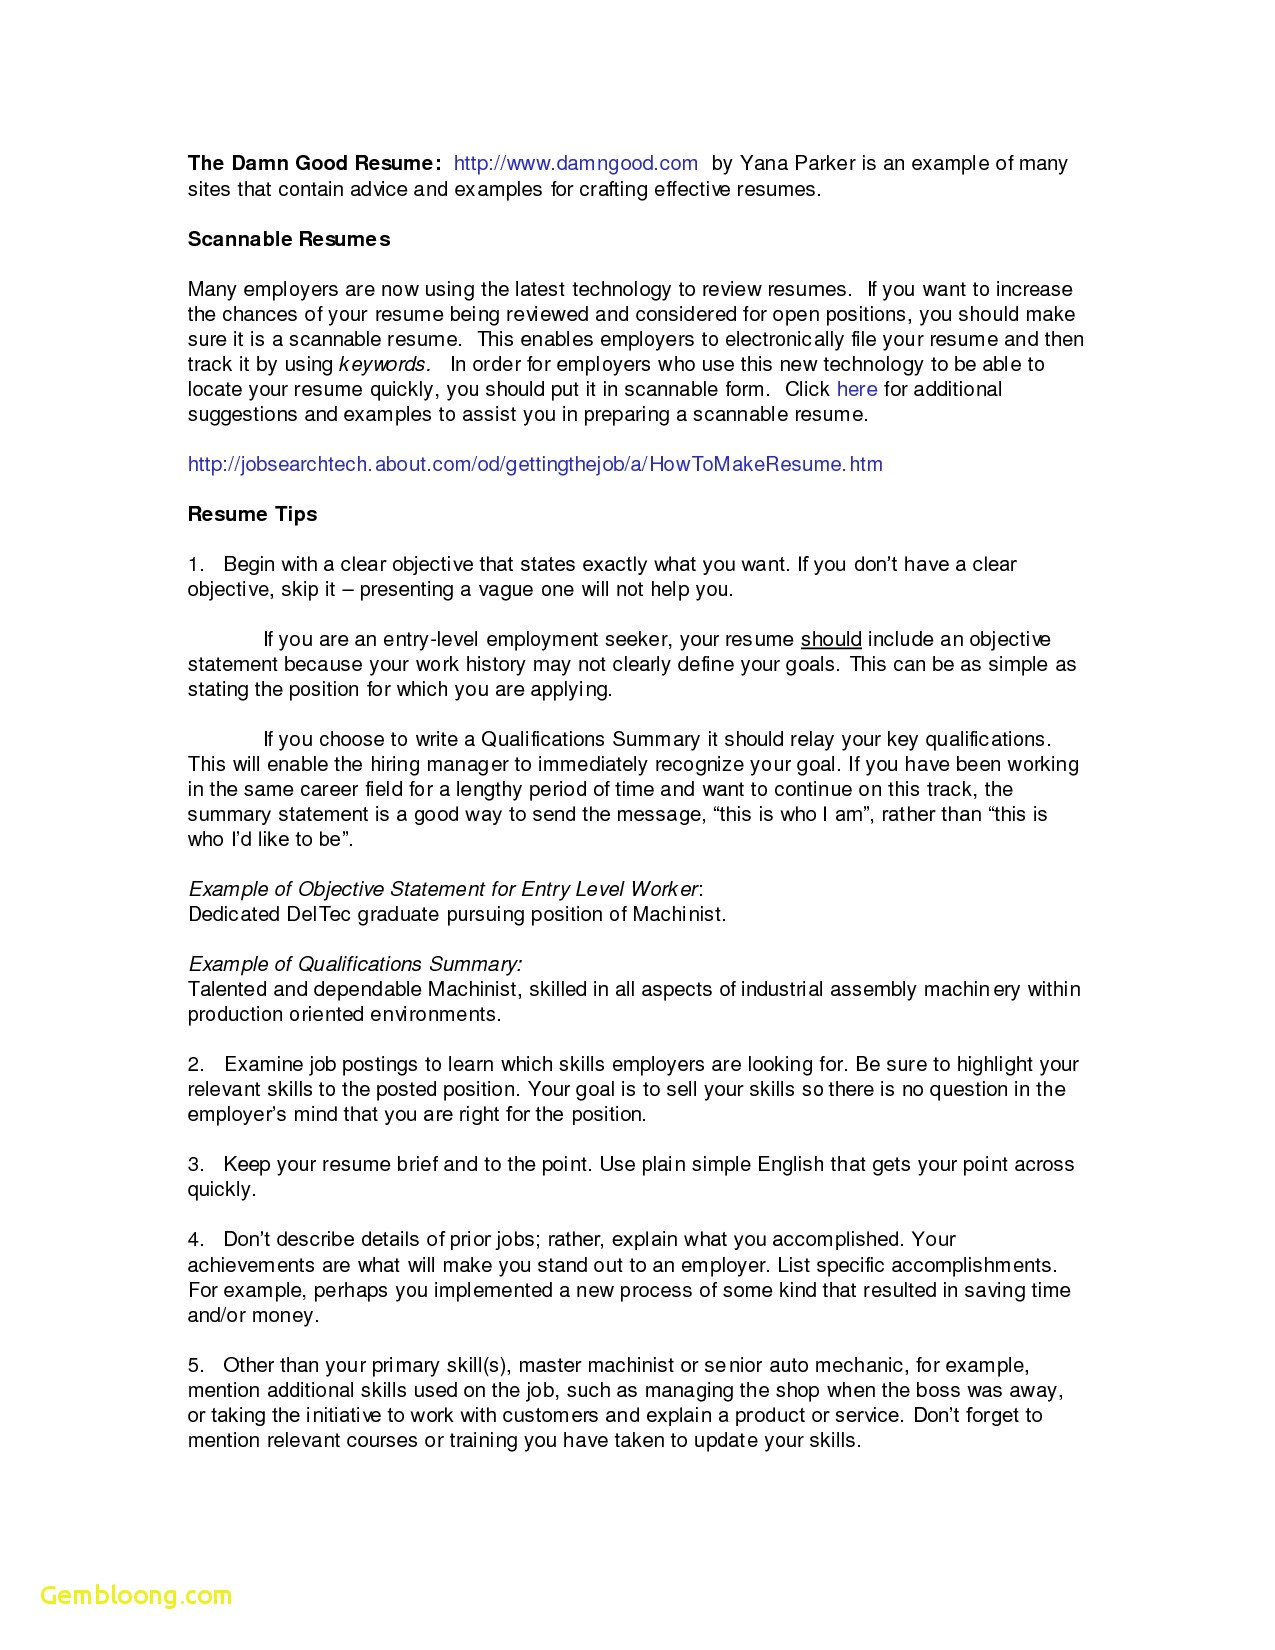 Data Analyst Job Description for Resume - 19 Best Data Analyst Resume Sample